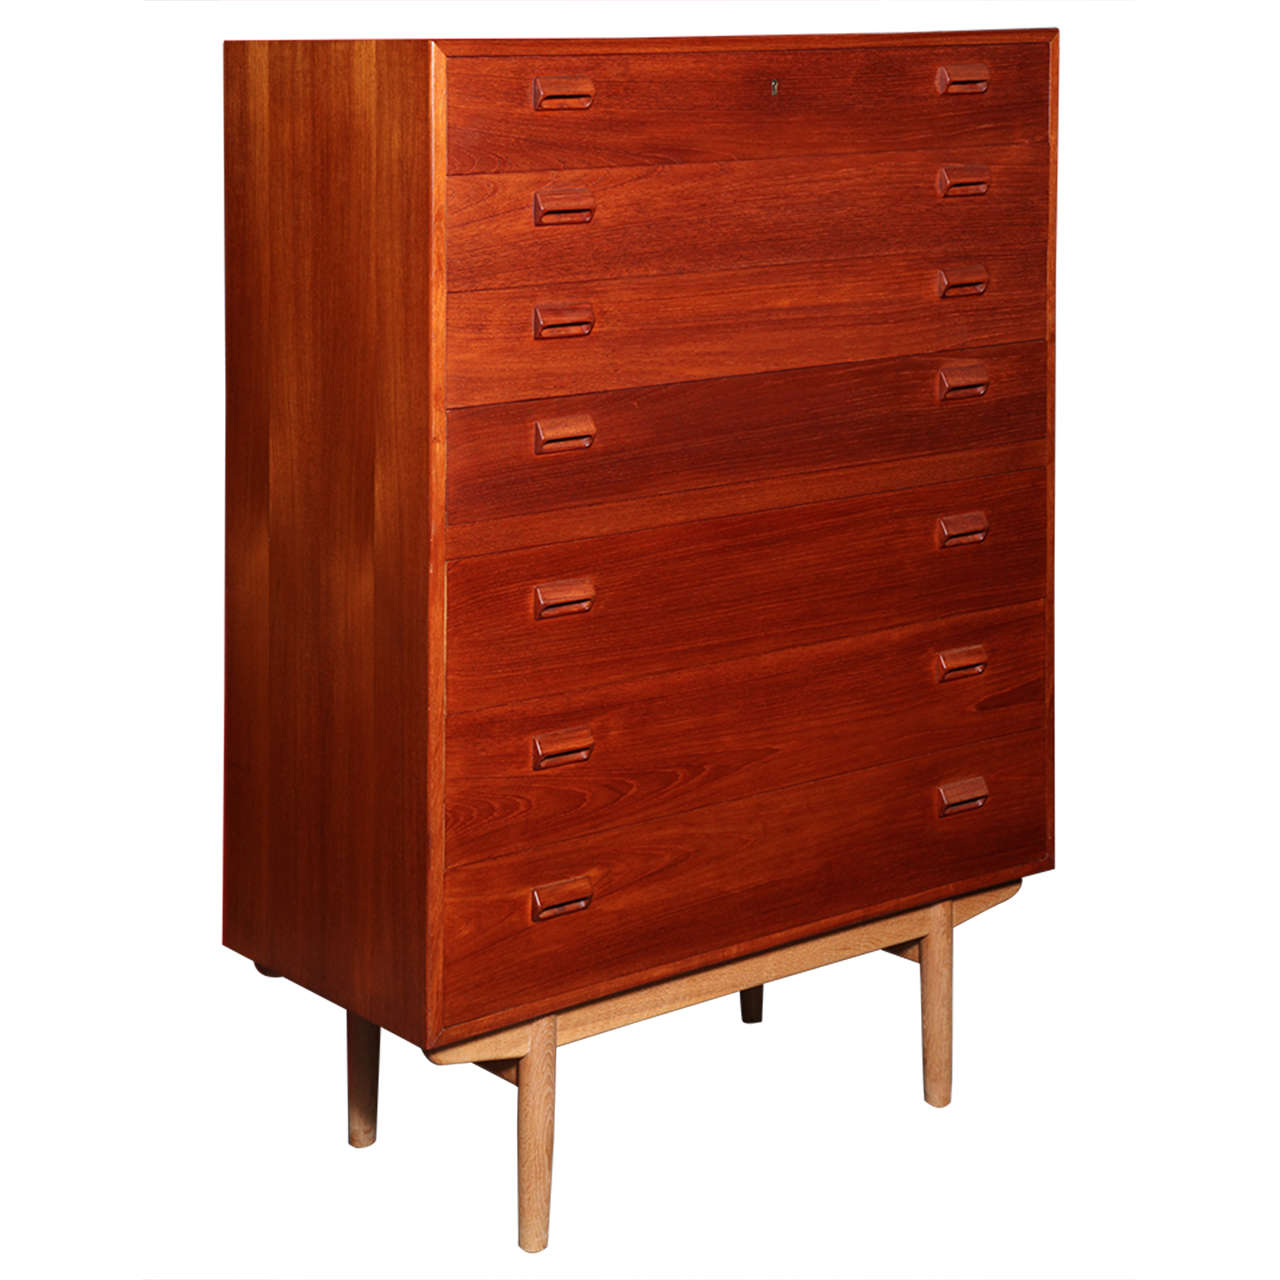 Mirrored Bedroom Chest Of Drawers Images The Luxurious